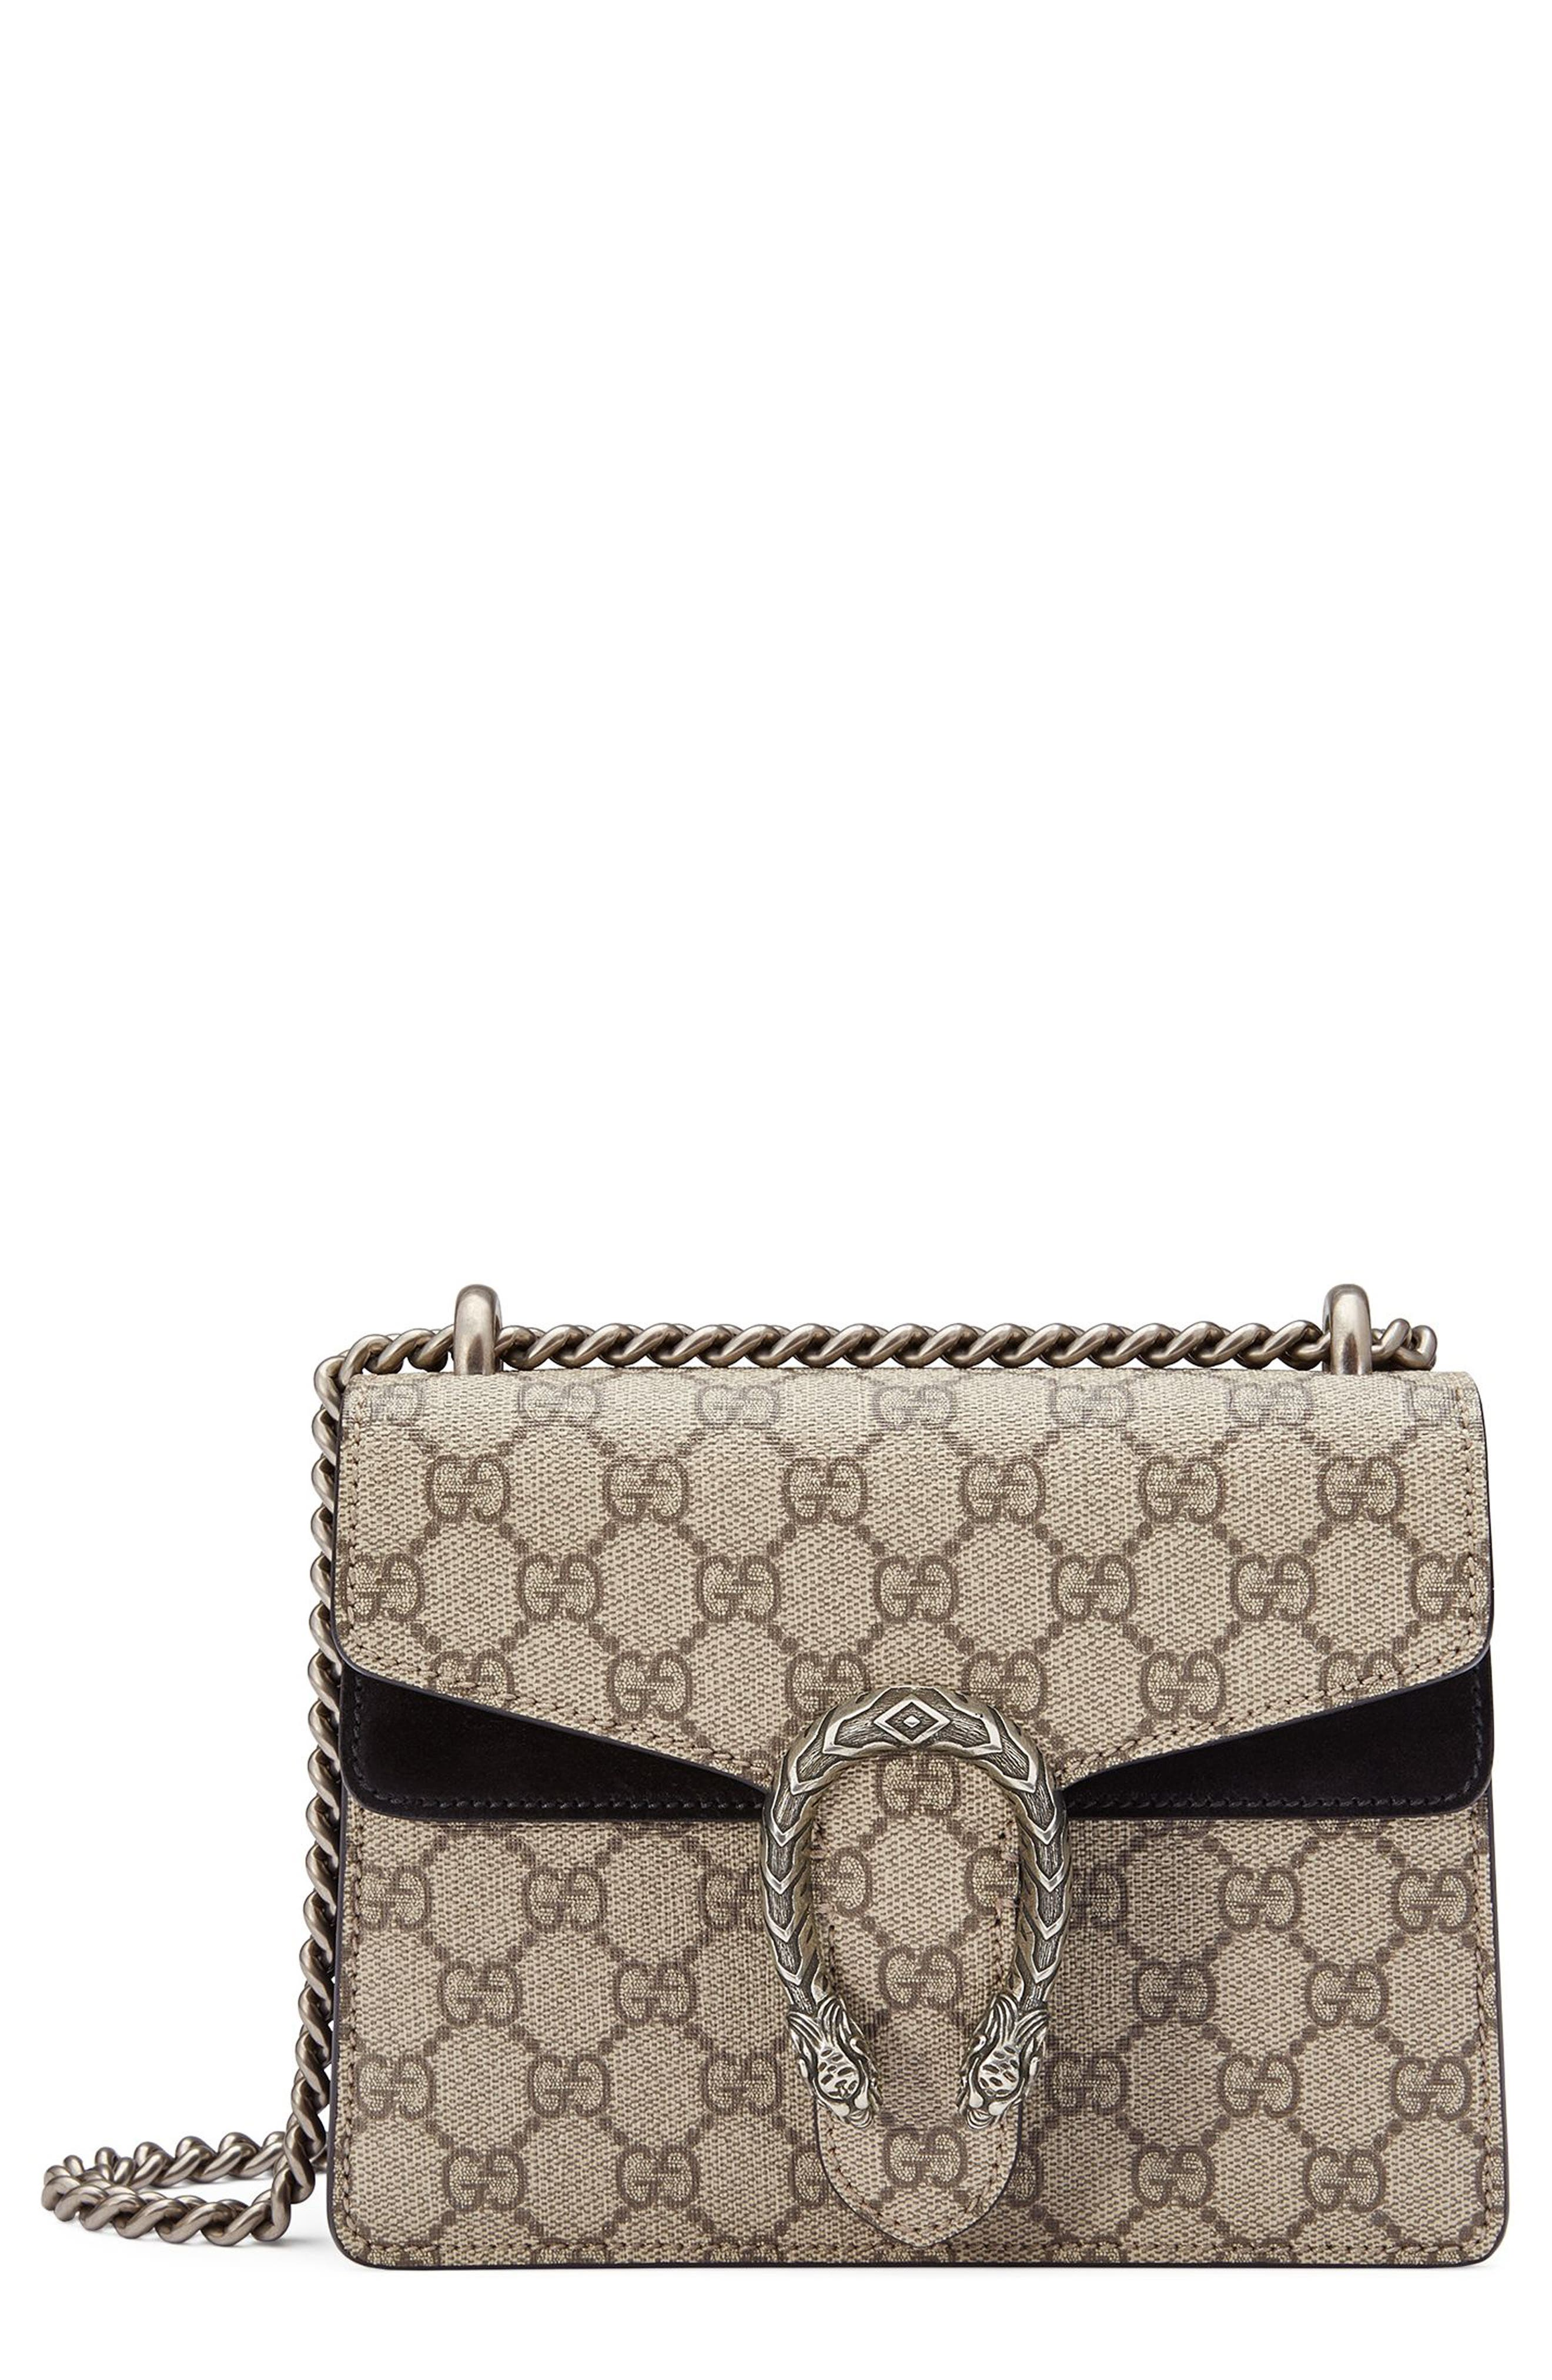 Alternate Image 1 Selected - Gucci Mini Dionysus GG Supreme Shoulder Bag